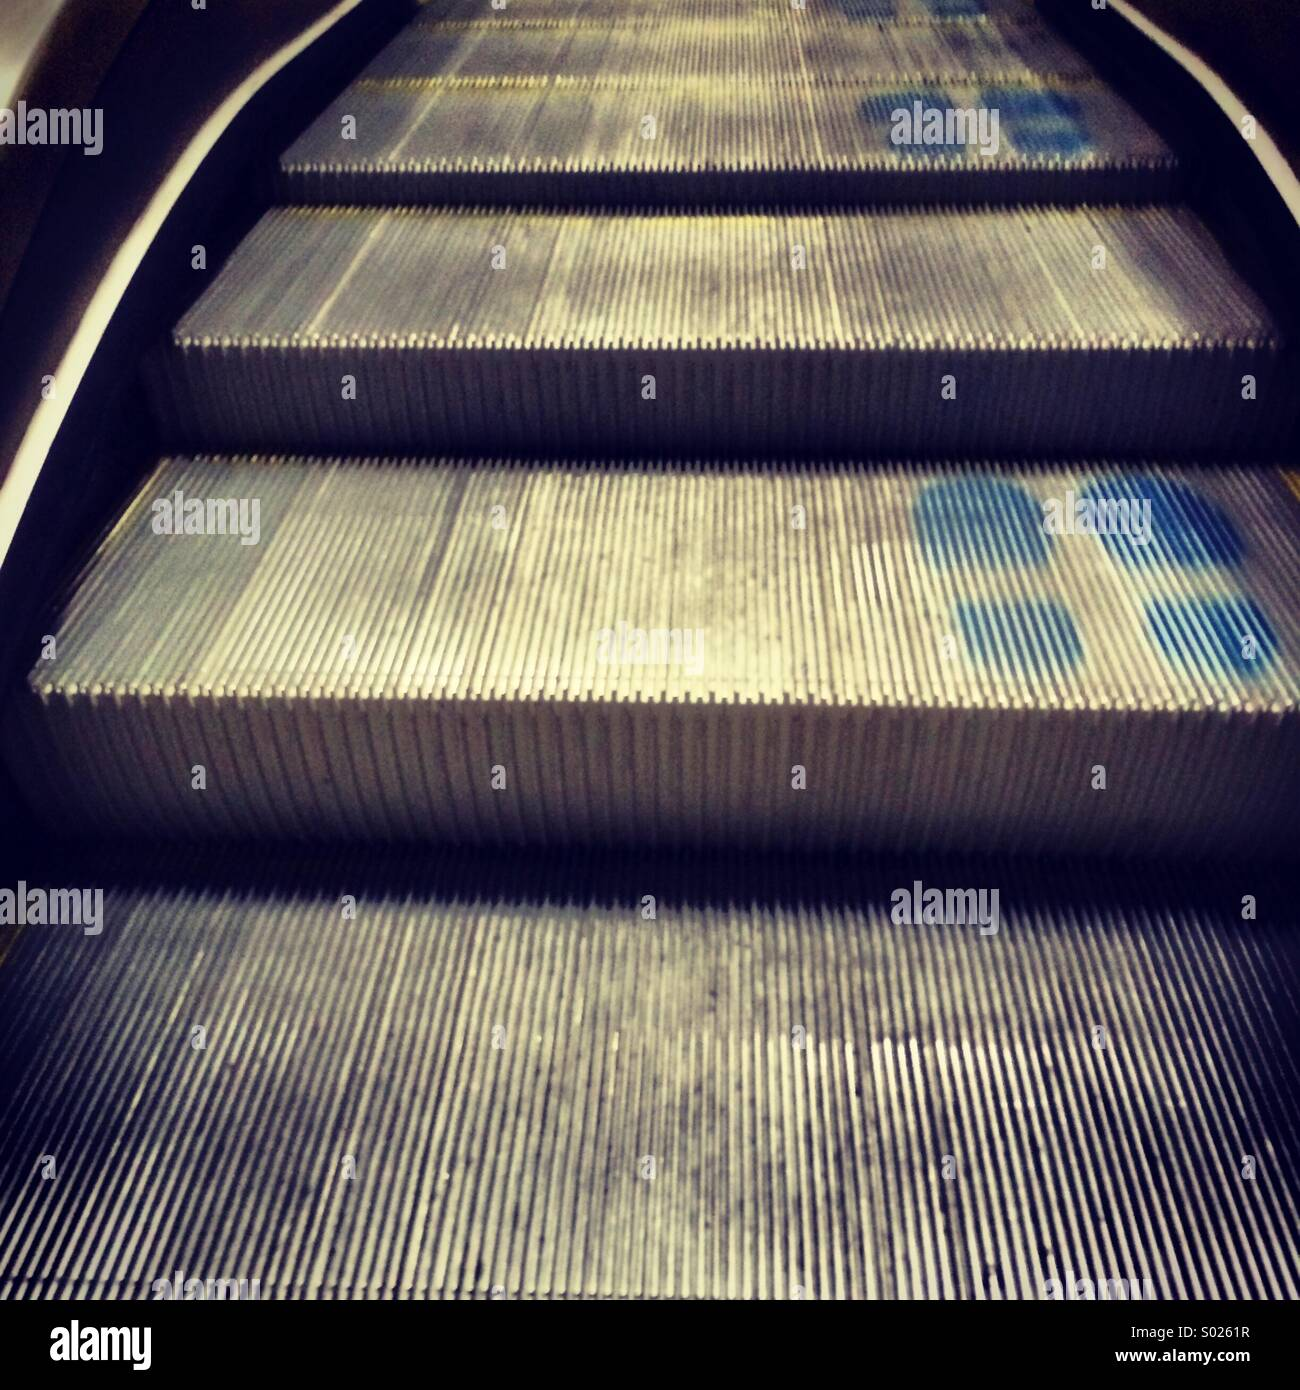 Close-up of escalator steps with footprints. - Stock Image